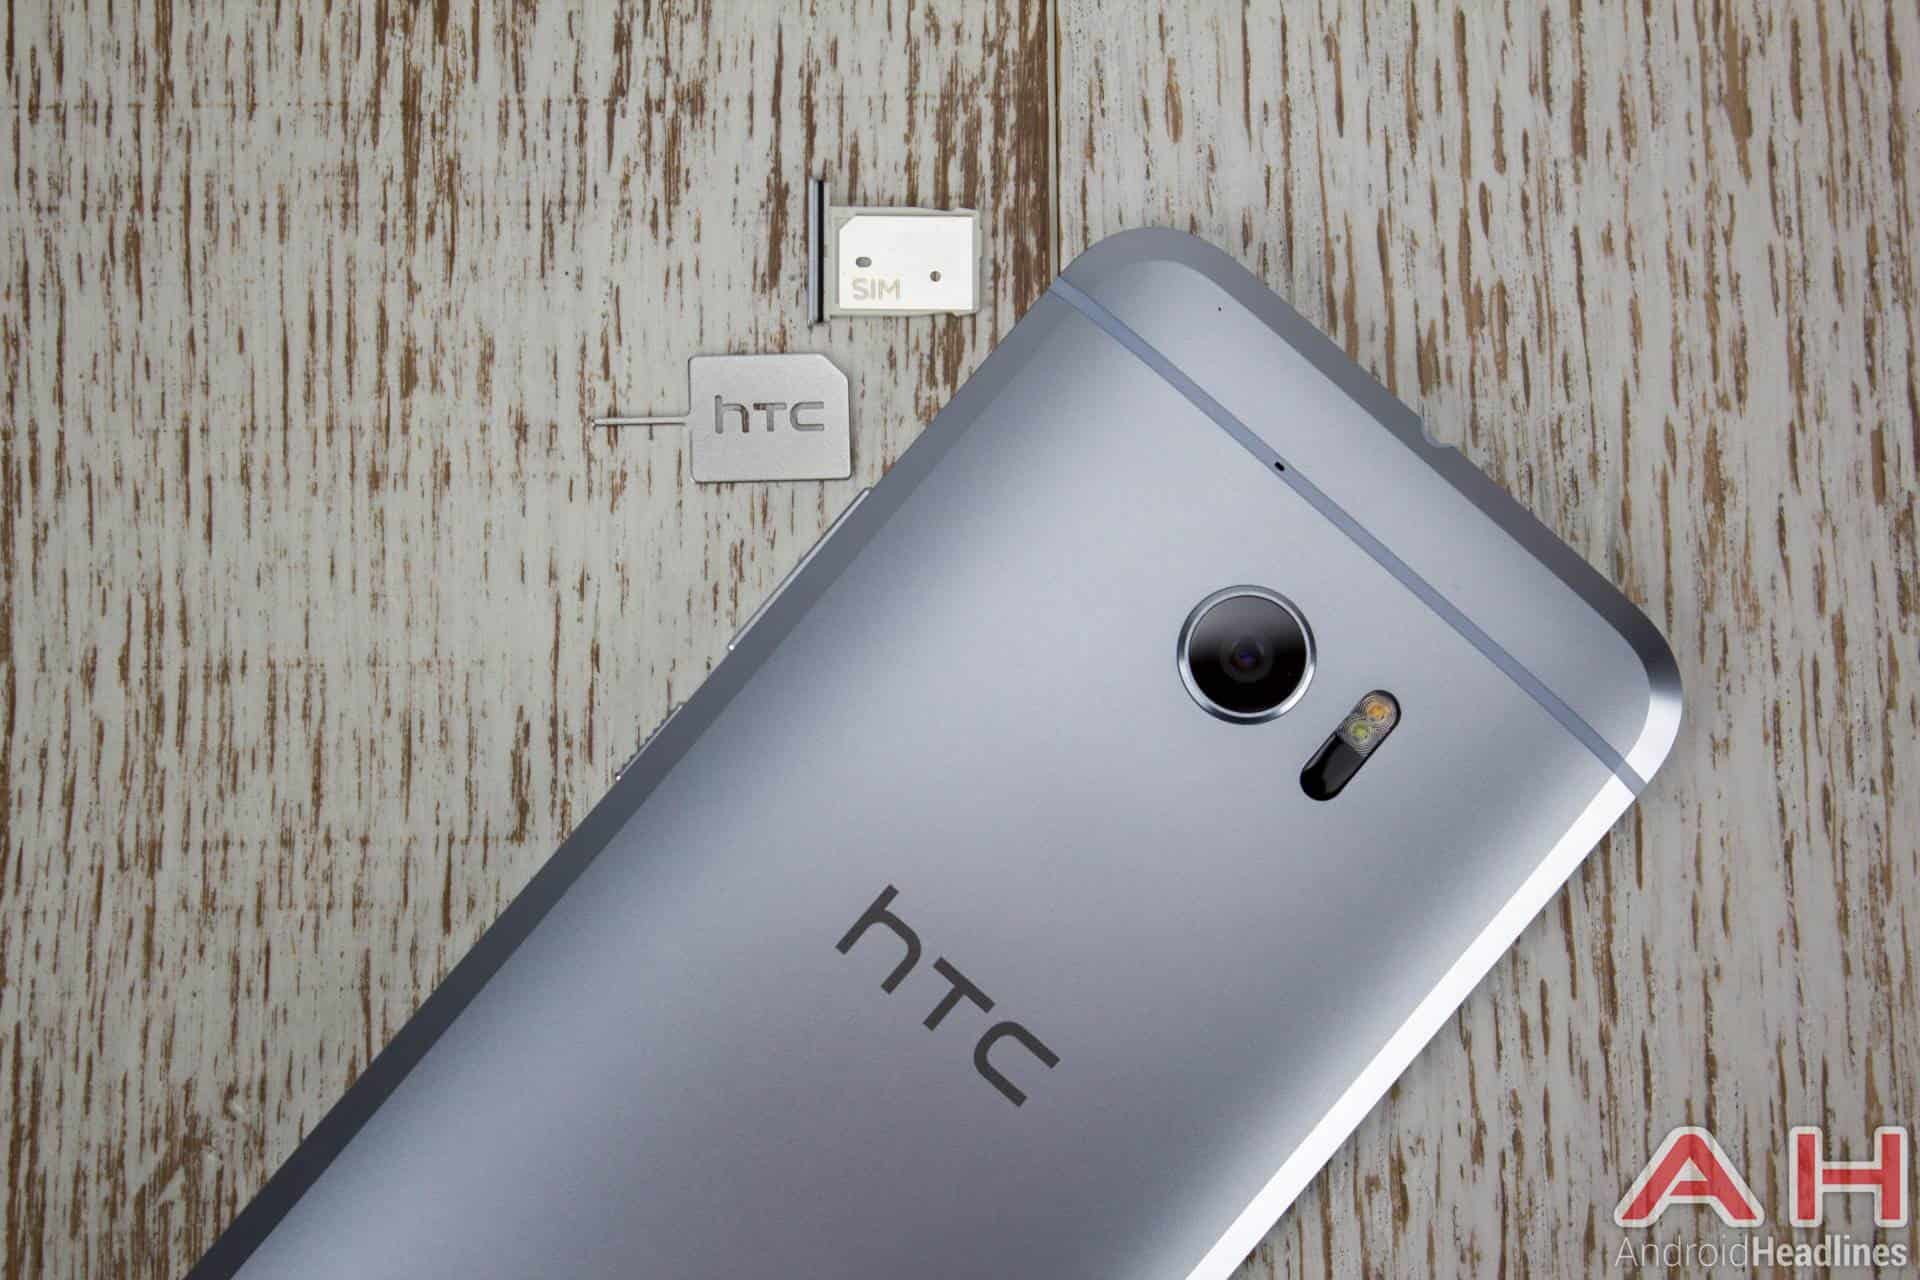 HTC-10-AH-NS-sim-card